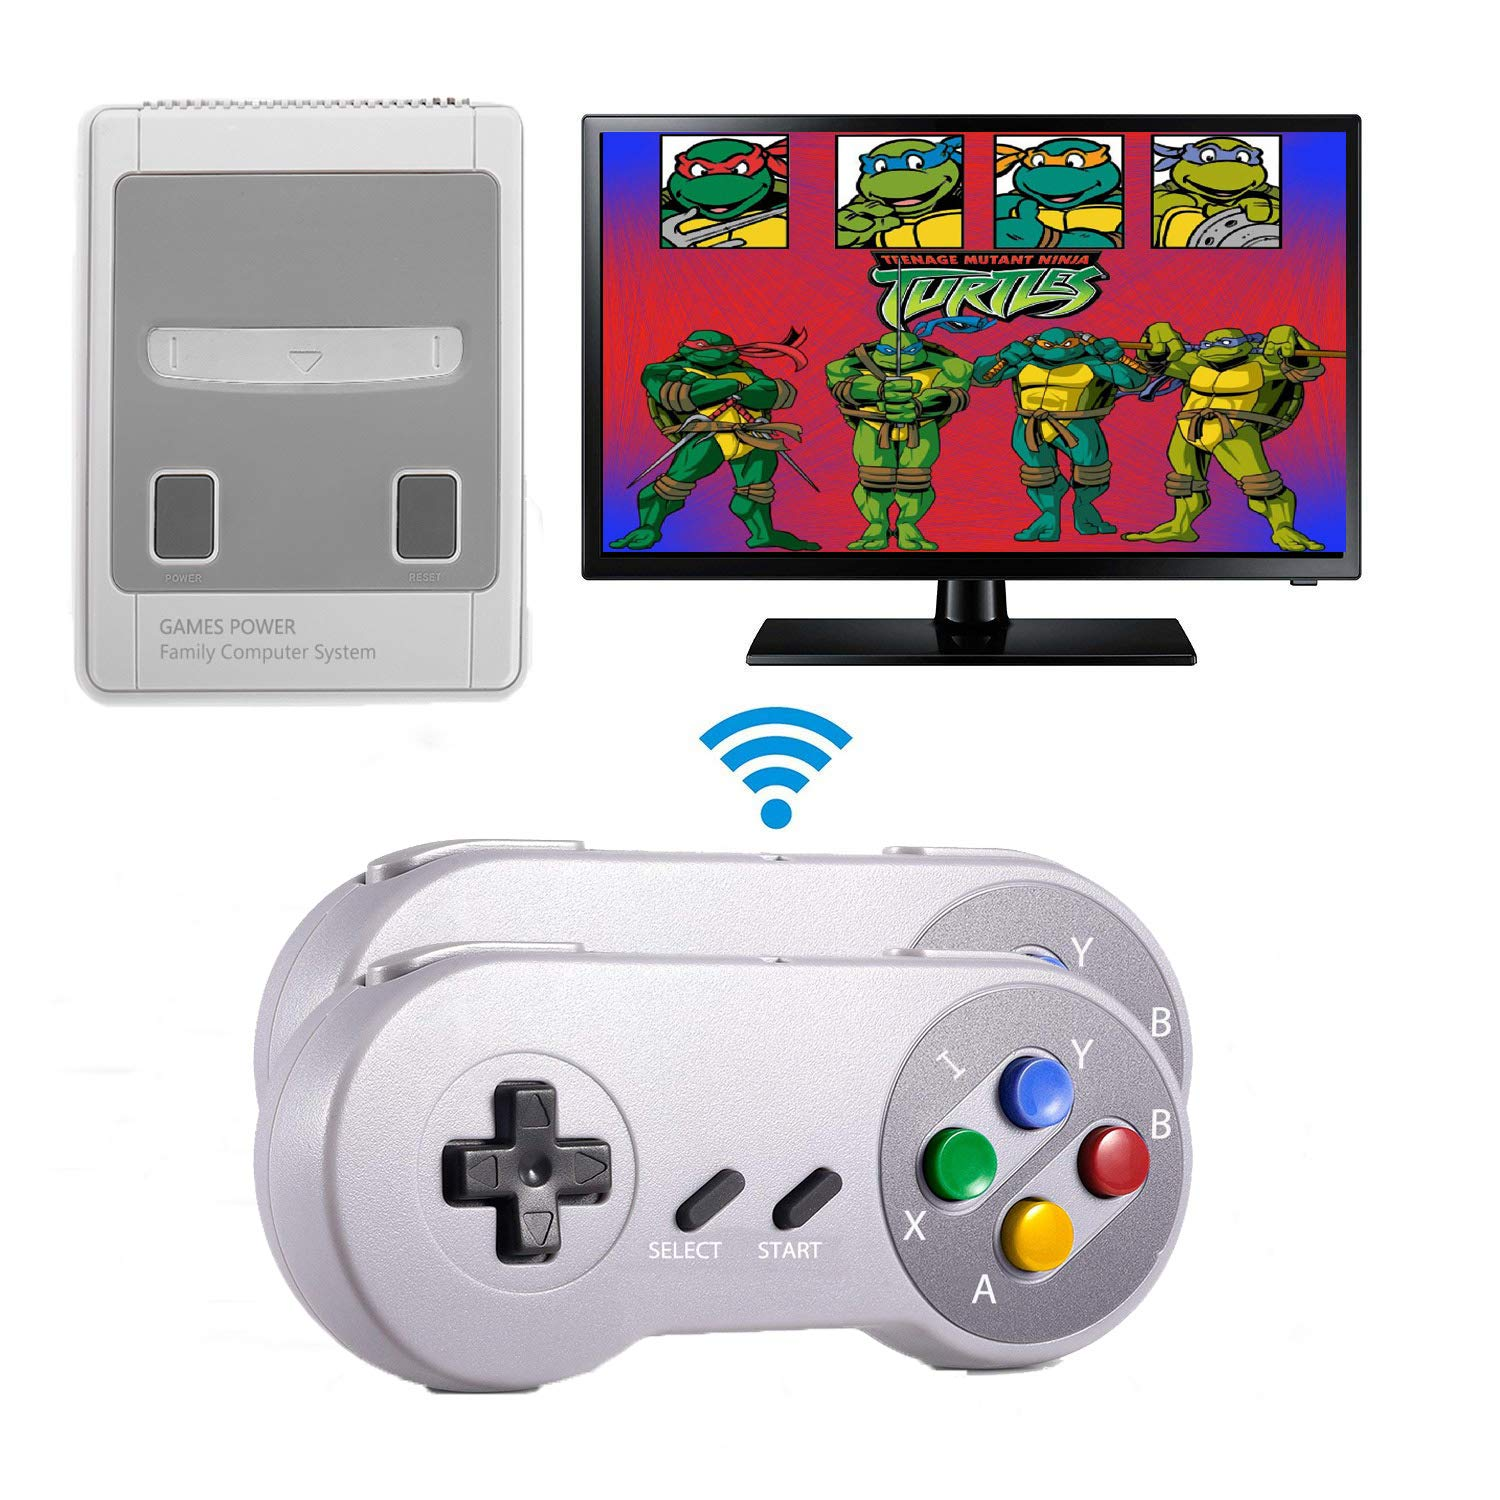 Xinguo Family Classic Game Consoles, Wireless Controller,Childhood Retro Game Console Built-in 557 TV Video Games, with Dual Wireless Controllers. (JP02) by Xinguo (Image #1)